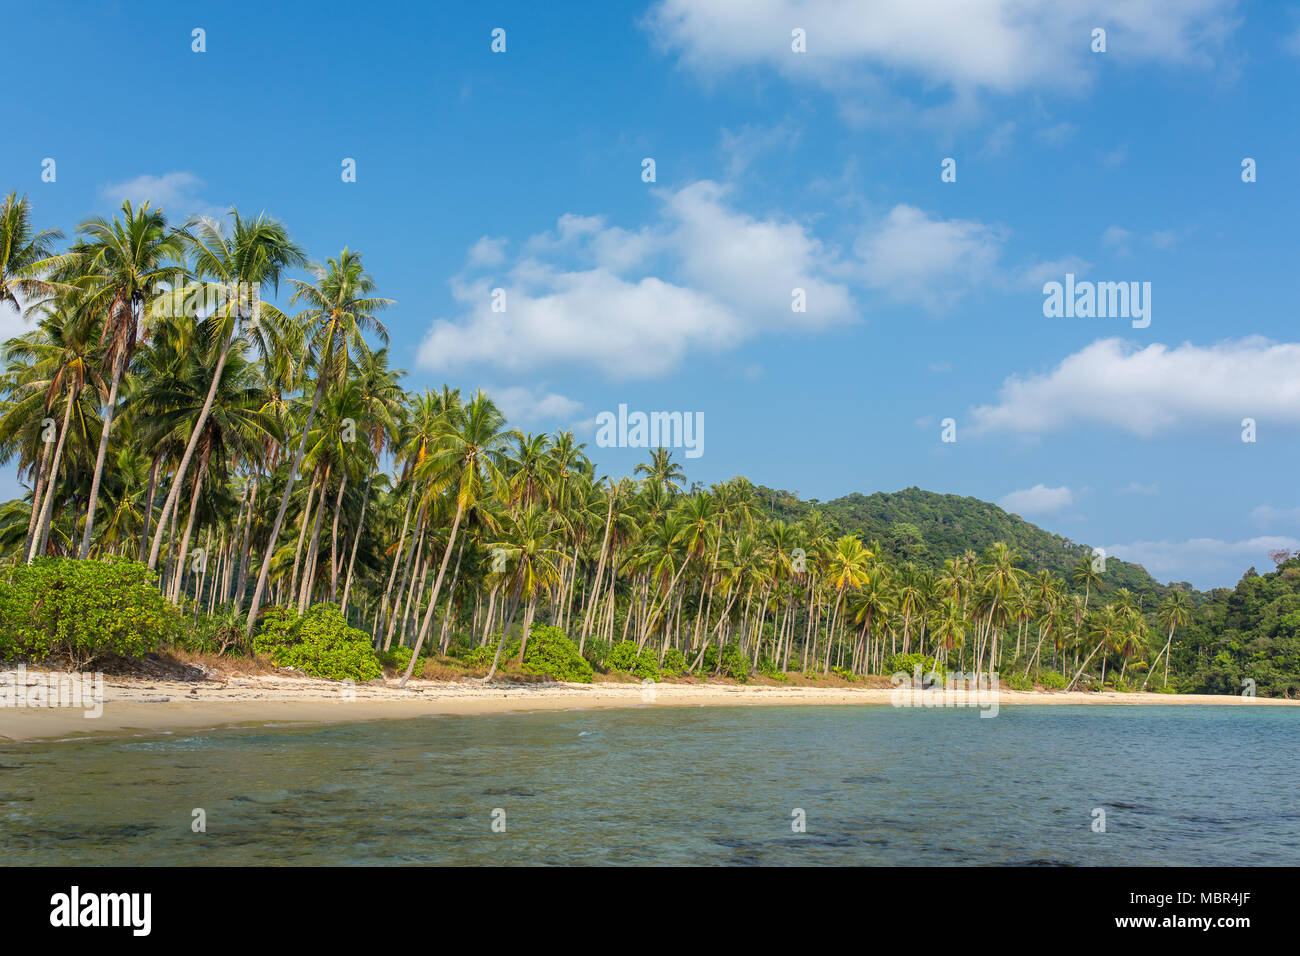 Palm trees on beautiful tropical beach on Koh Chang island in Thailand Stock Photo